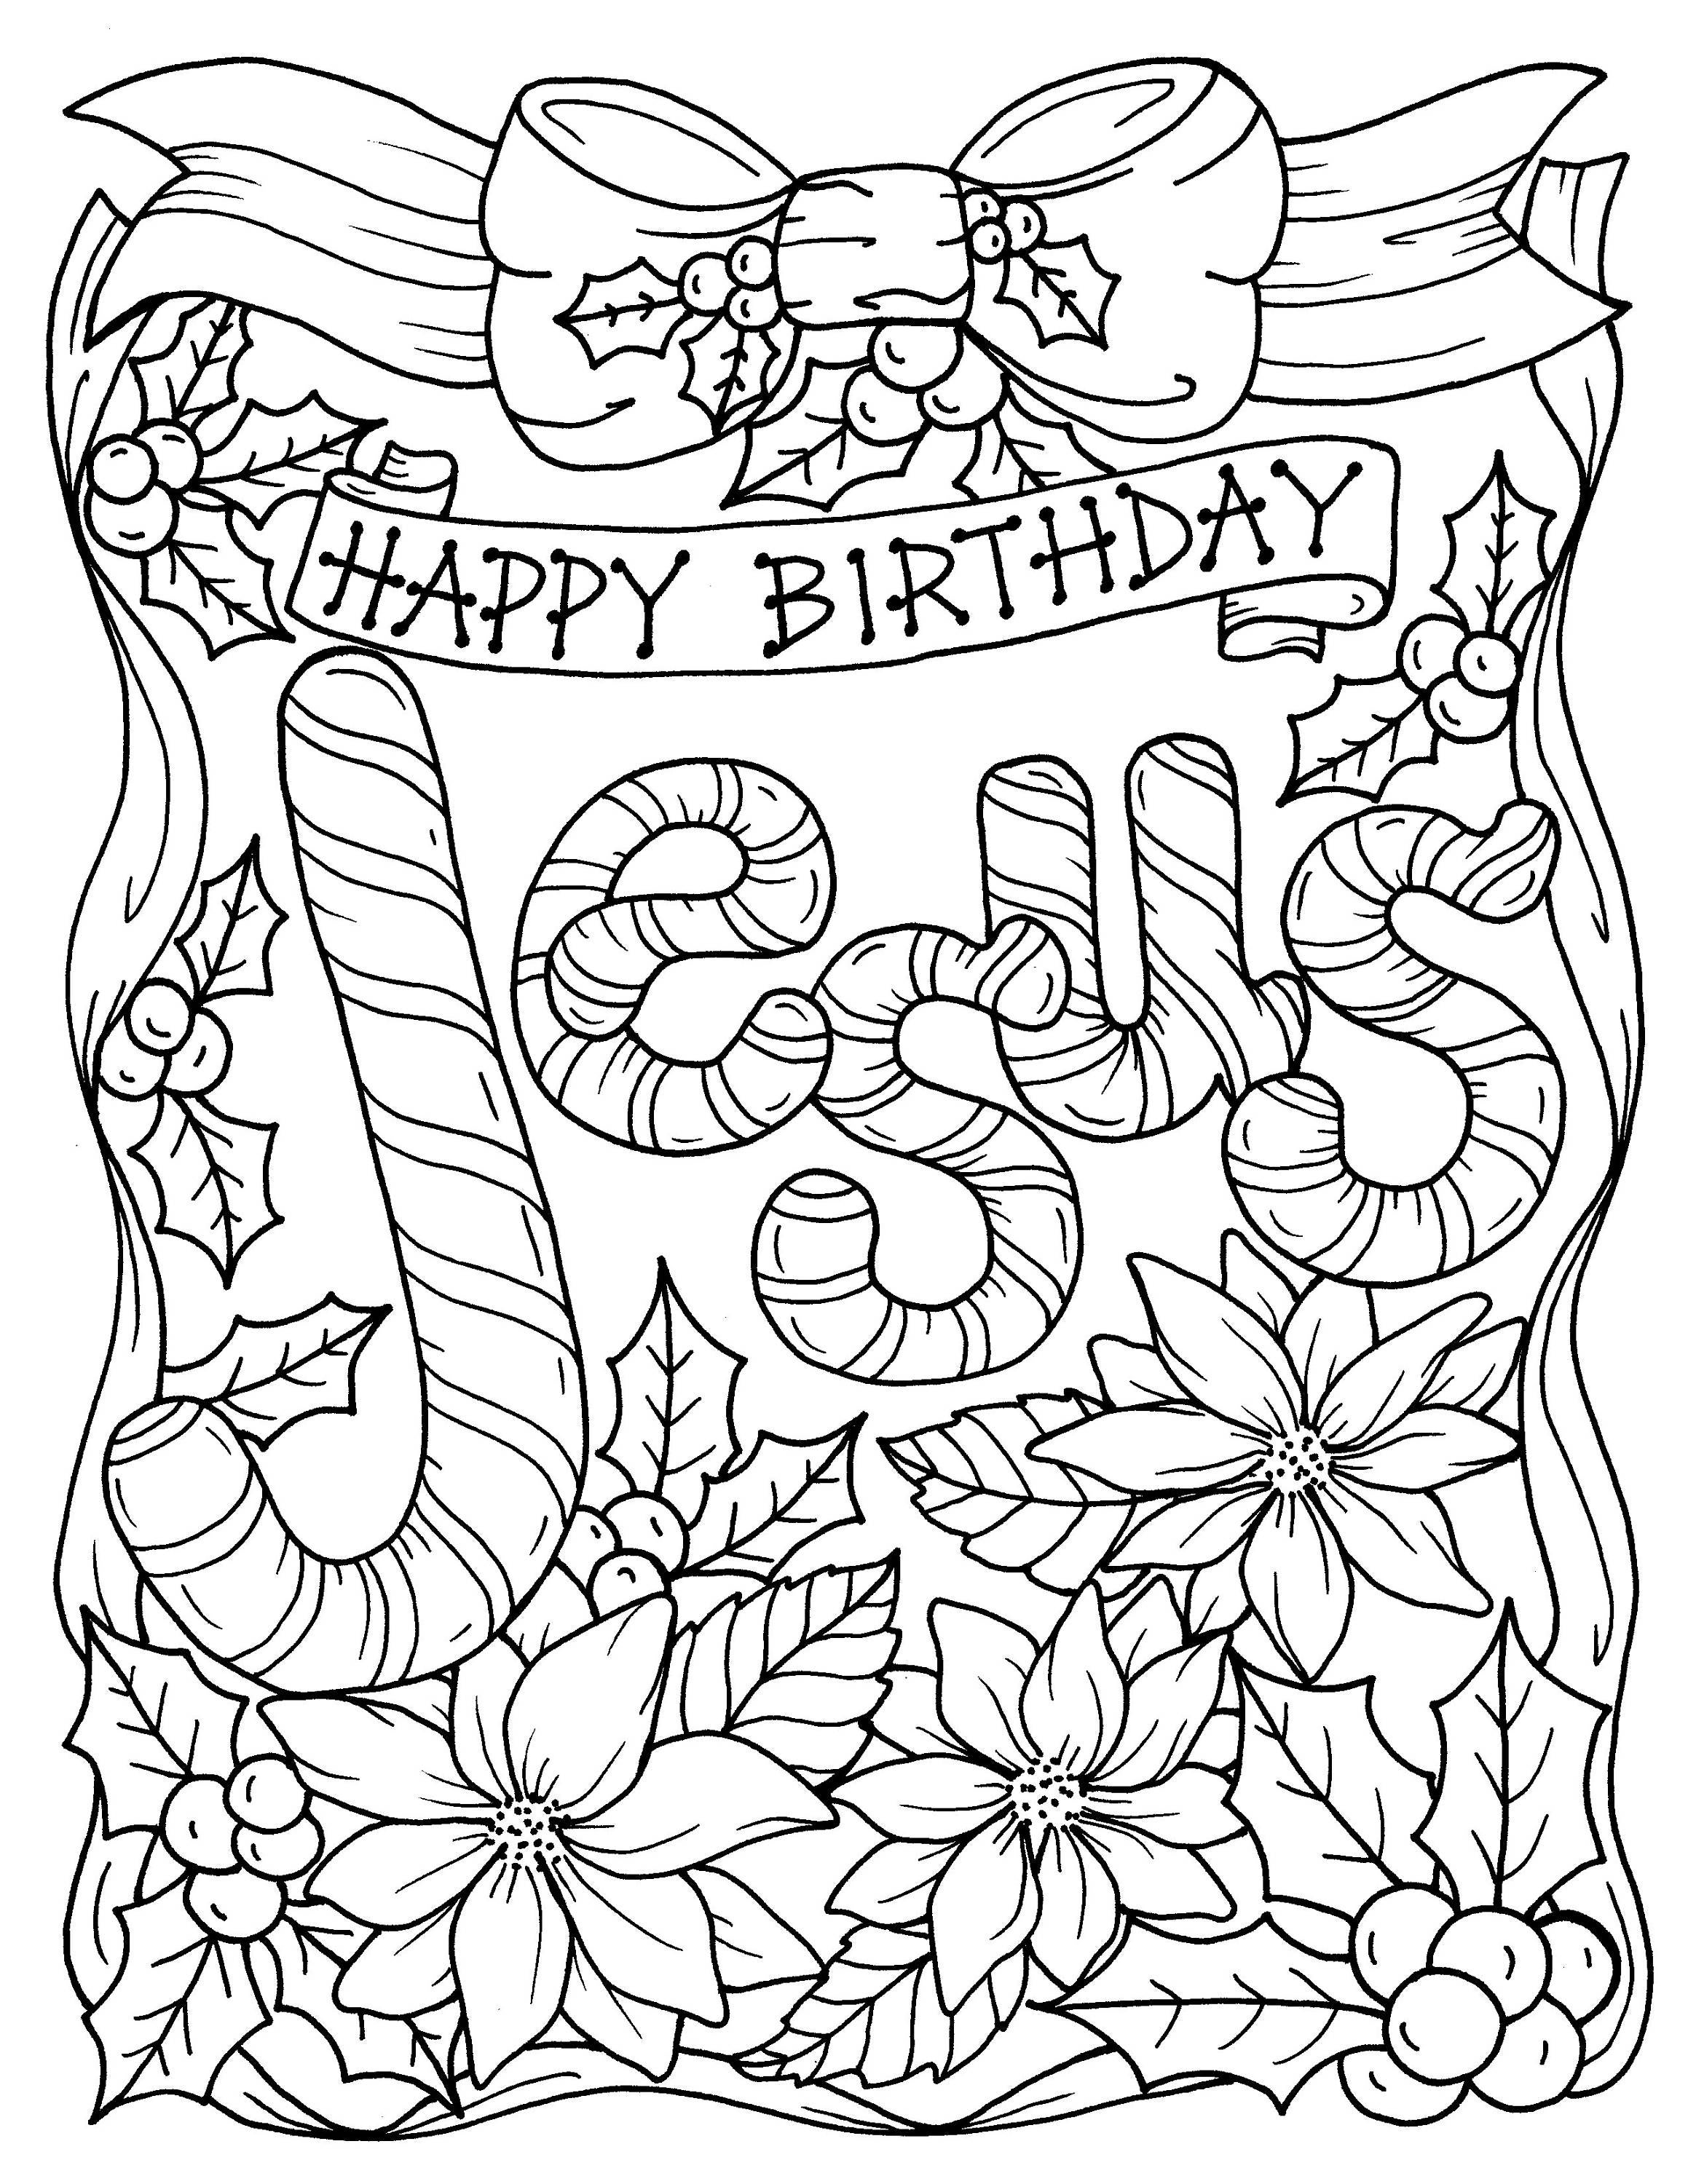 adult christmas coloring pages a crowe39s gathering christmas ornament coloring page christmas adult pages coloring